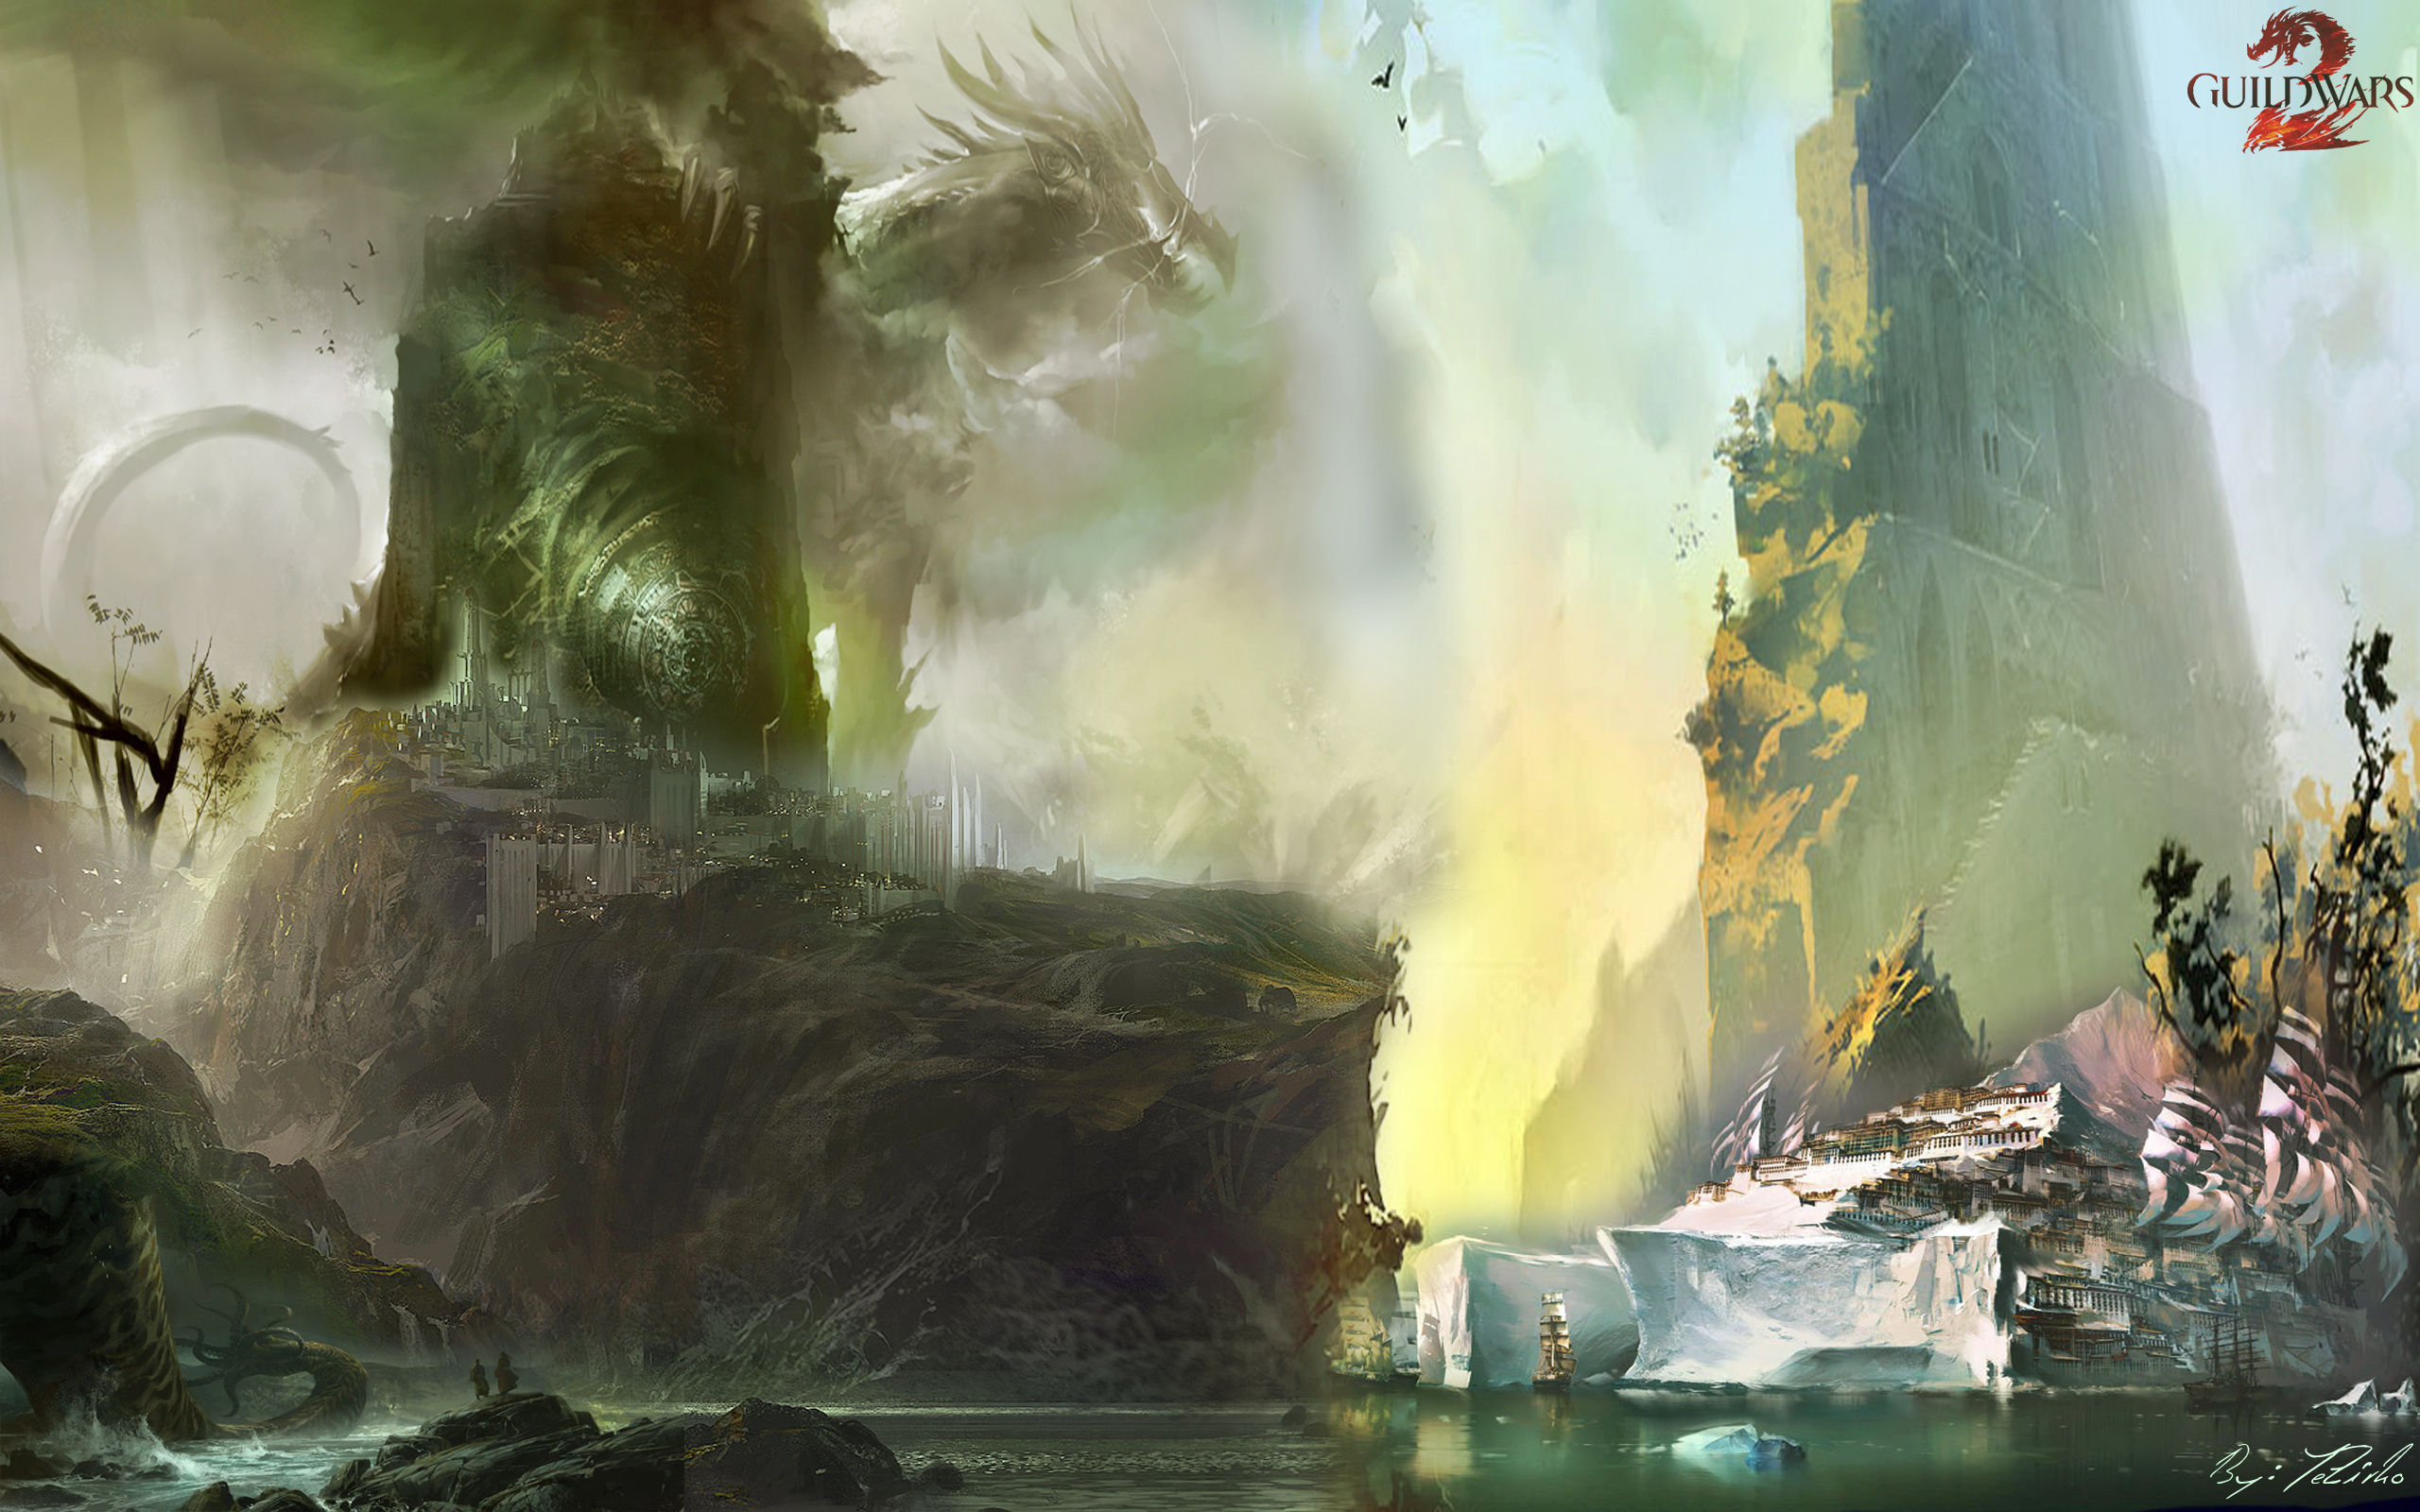 Guild Wars 2 Hd Wallpaper Background Image 2560x1600 Id